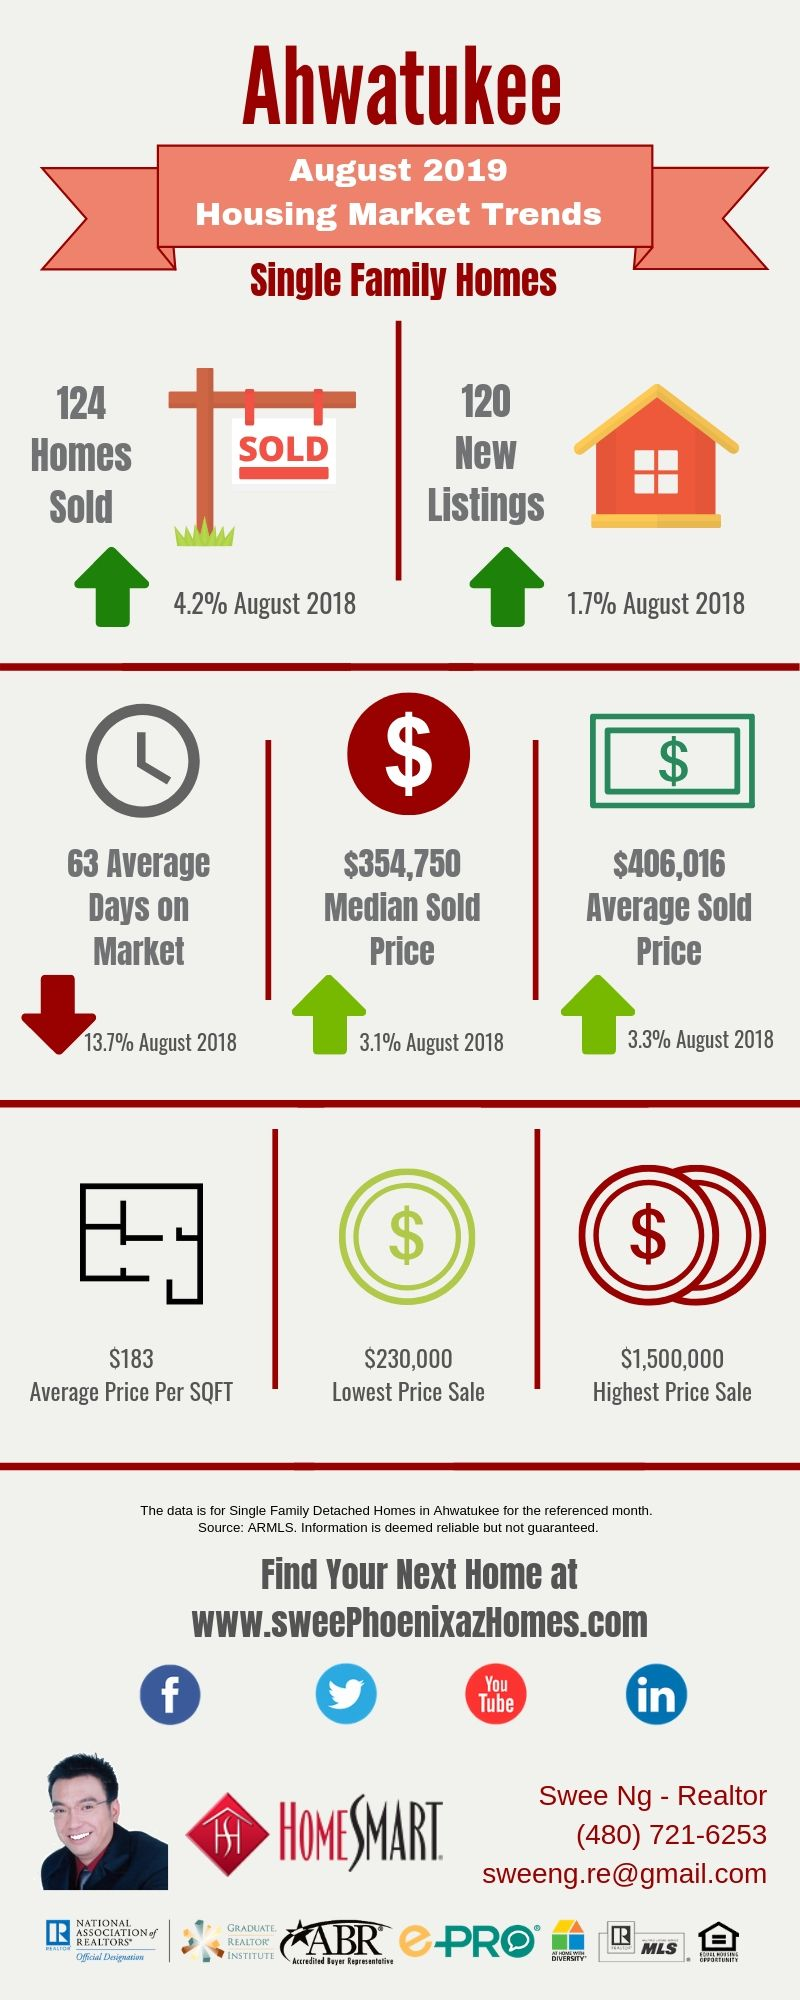 August 2019 Ahwatukee Housing Market Update, House Value, Real Estate and Statistic by Swee Ng